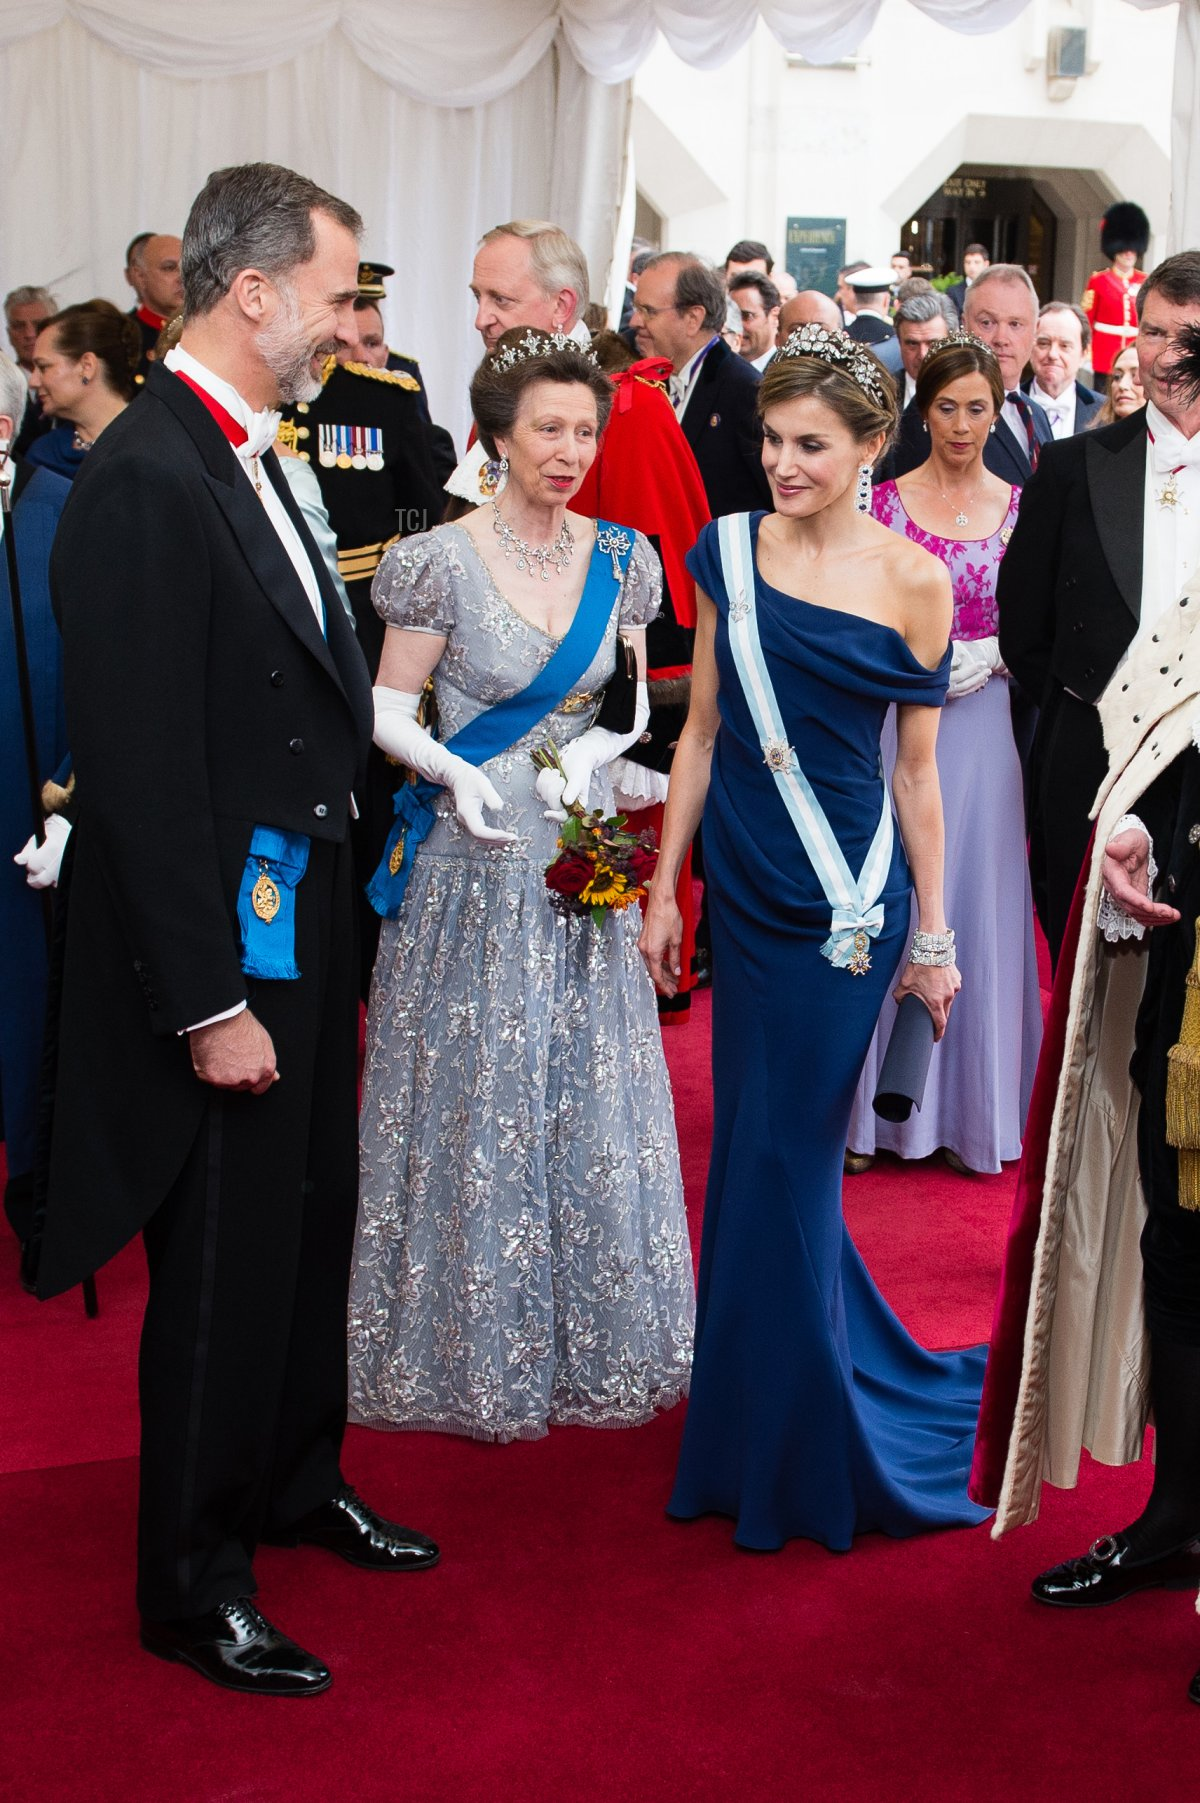 King Felipe VI of Spain, Princess Anne, Princess Royal and Queen Letizia of Spain attend the Lord Mayor's Banquet at the Guildhall during a State visit by the King and Queen of Spain on July 13, 2017 in London, England